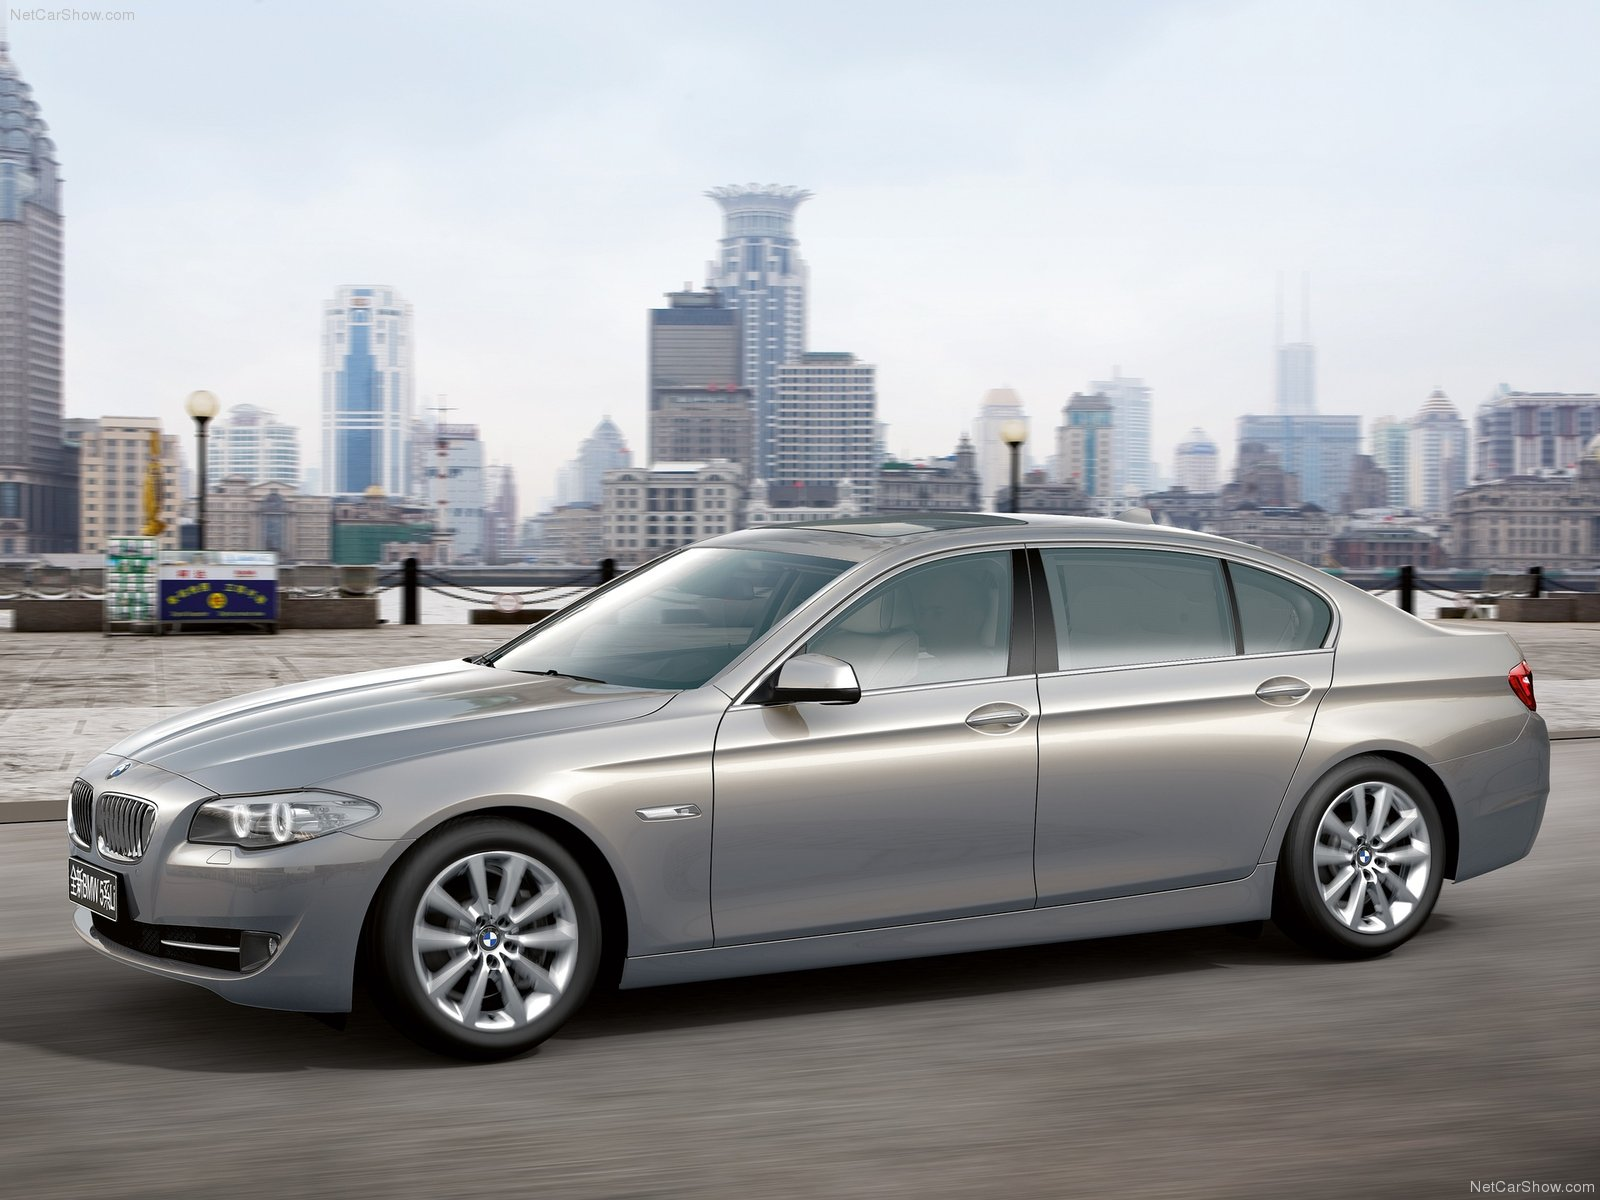 BMW-5-Series_Long-Wheelbase_2011_1600x1200_wallpaper_01.jpg